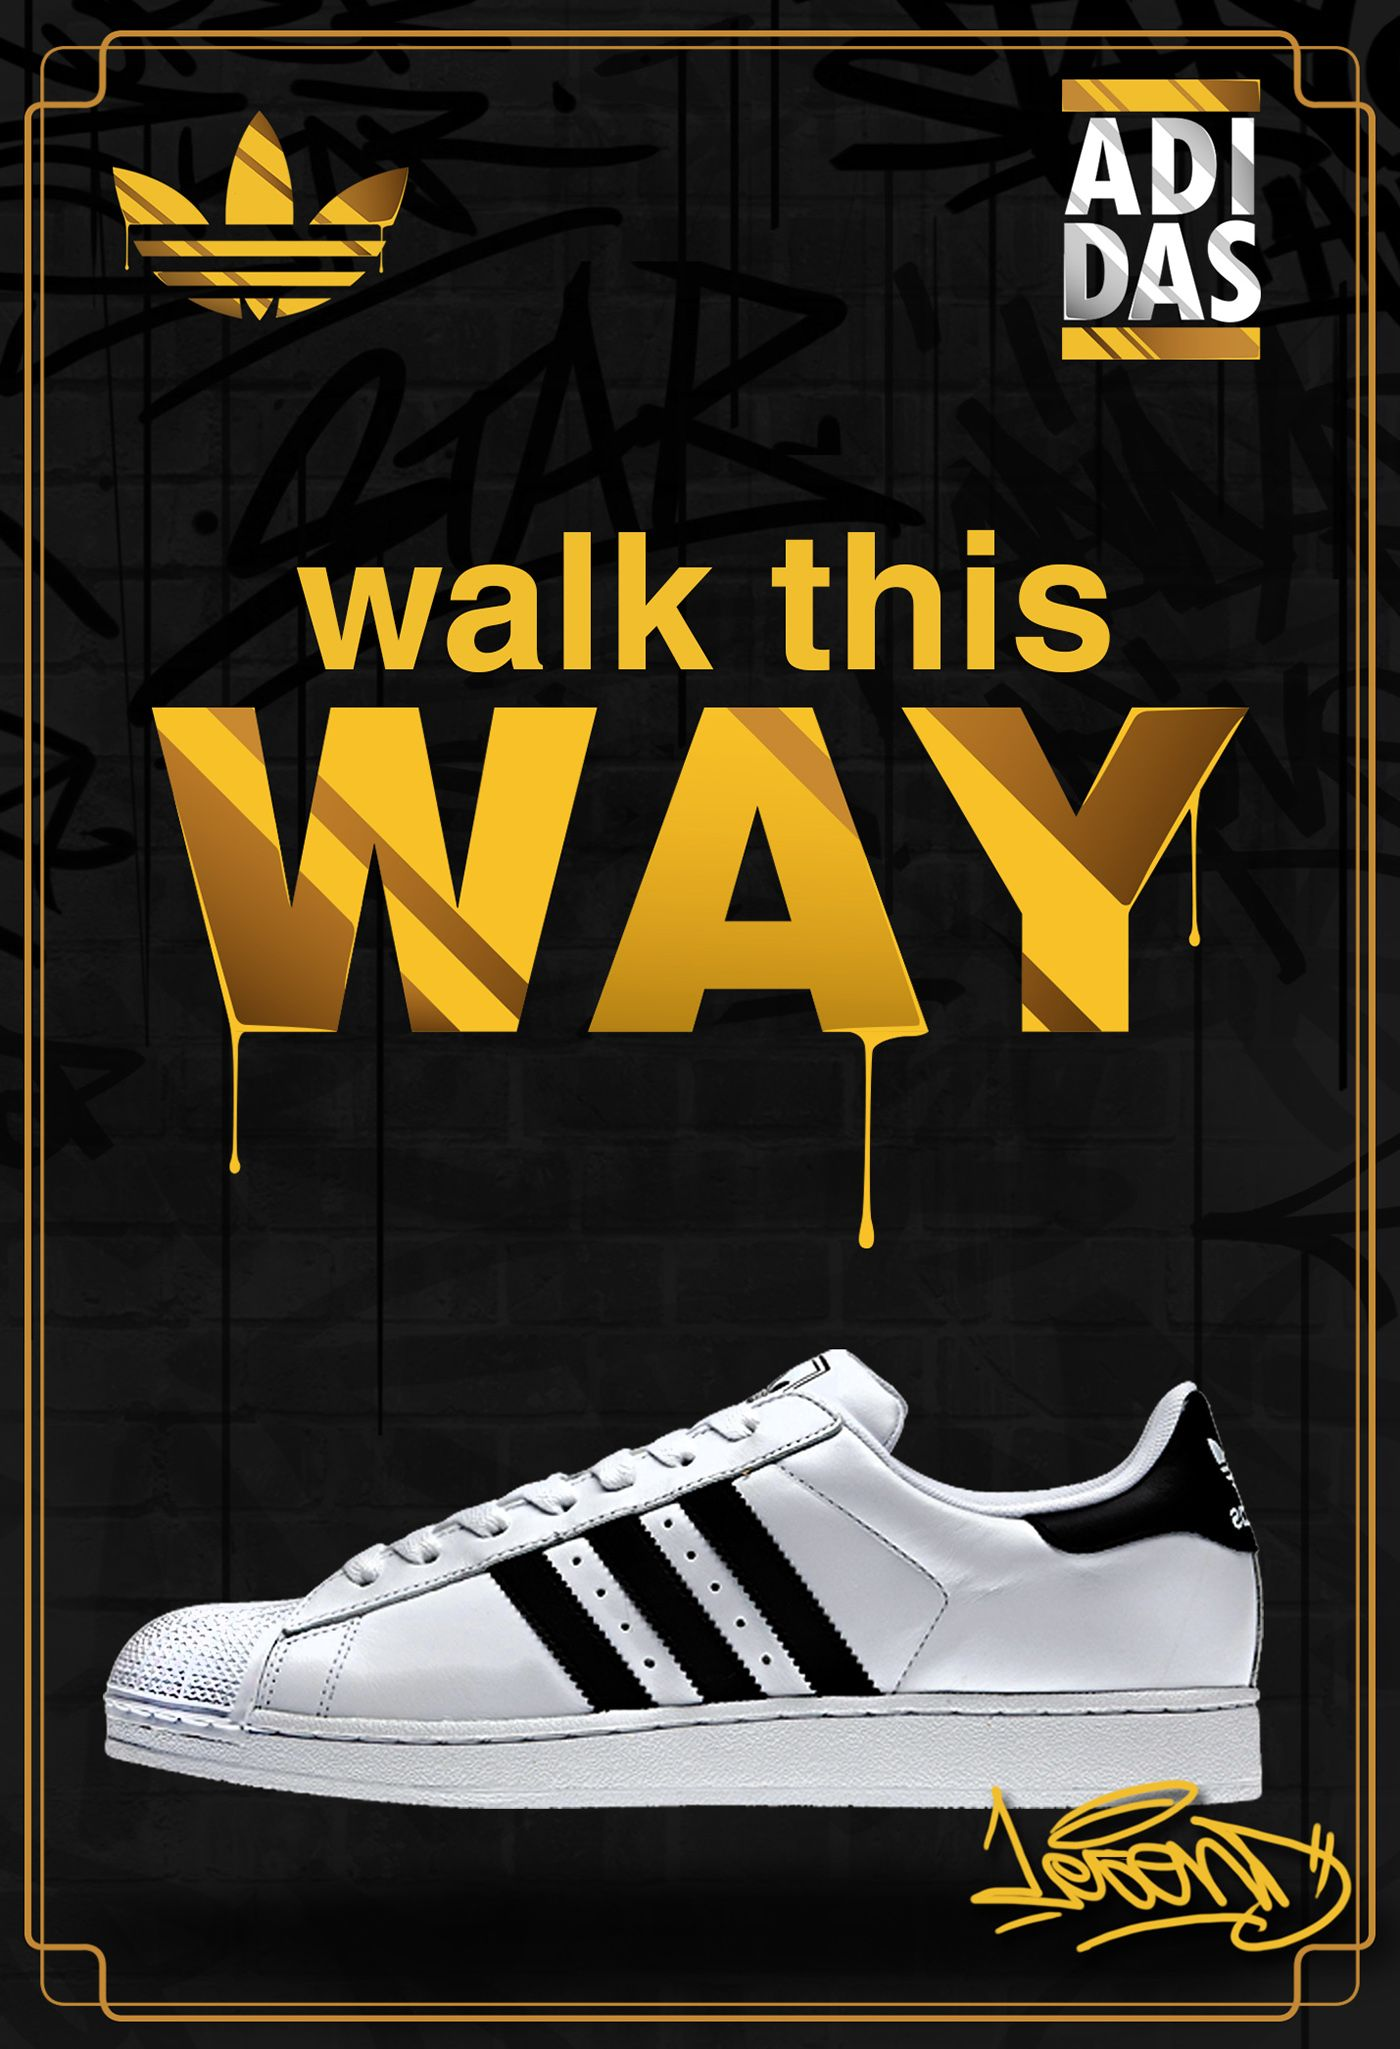 ADIDAS SuperStar | RUN DMC on Behance · Adidas LogoNike Shoes ...